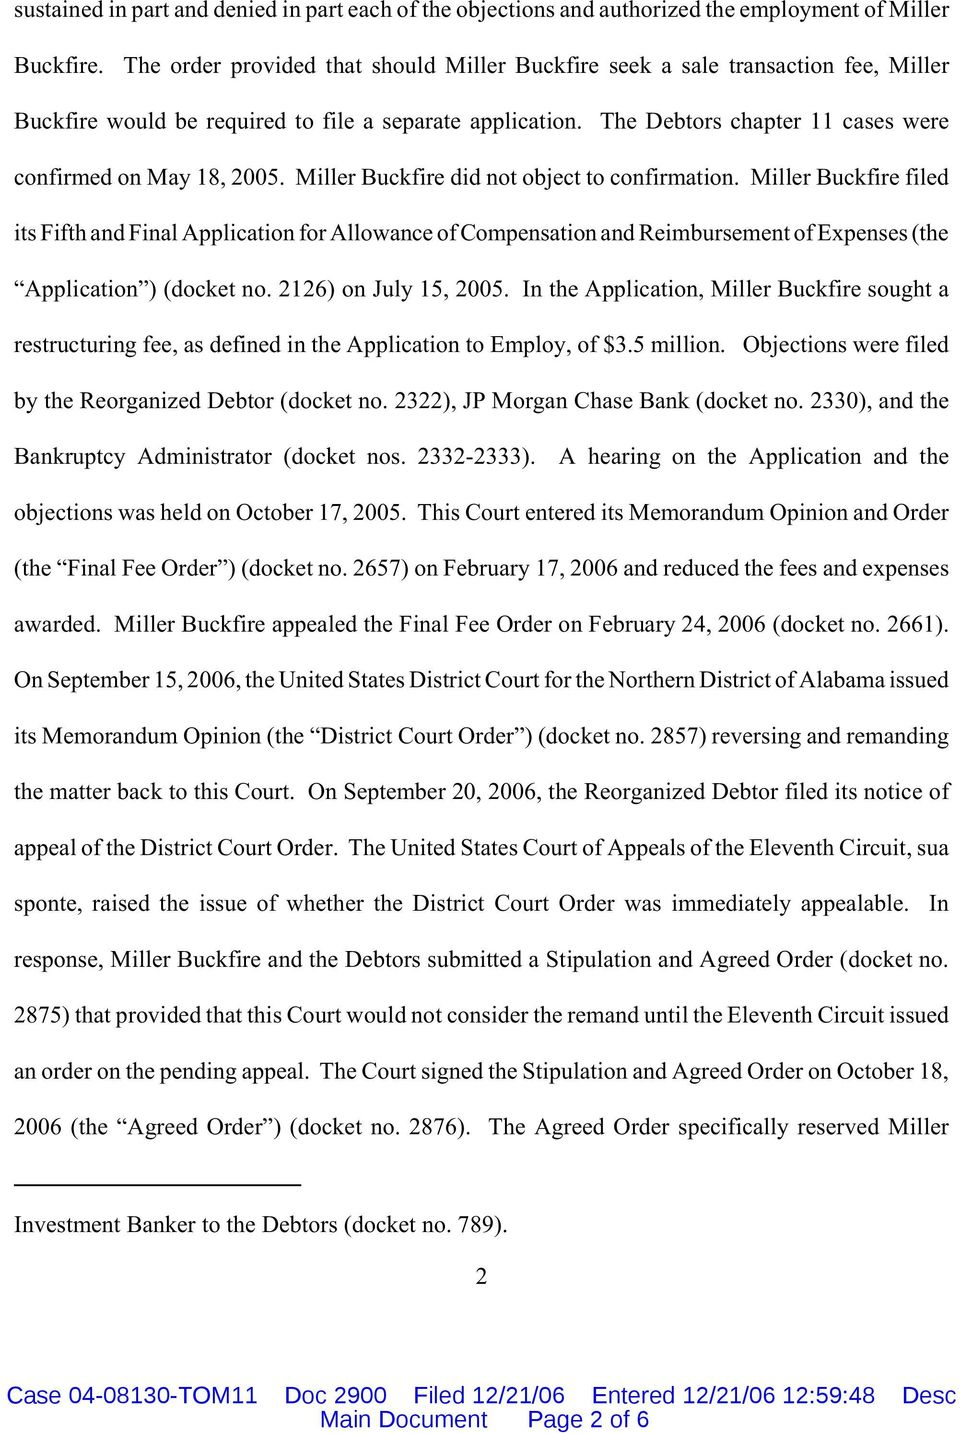 The Debtors chapter 11 cases were confirmed on May 18, 2005. Miller Buckfire did not object to confirmation.